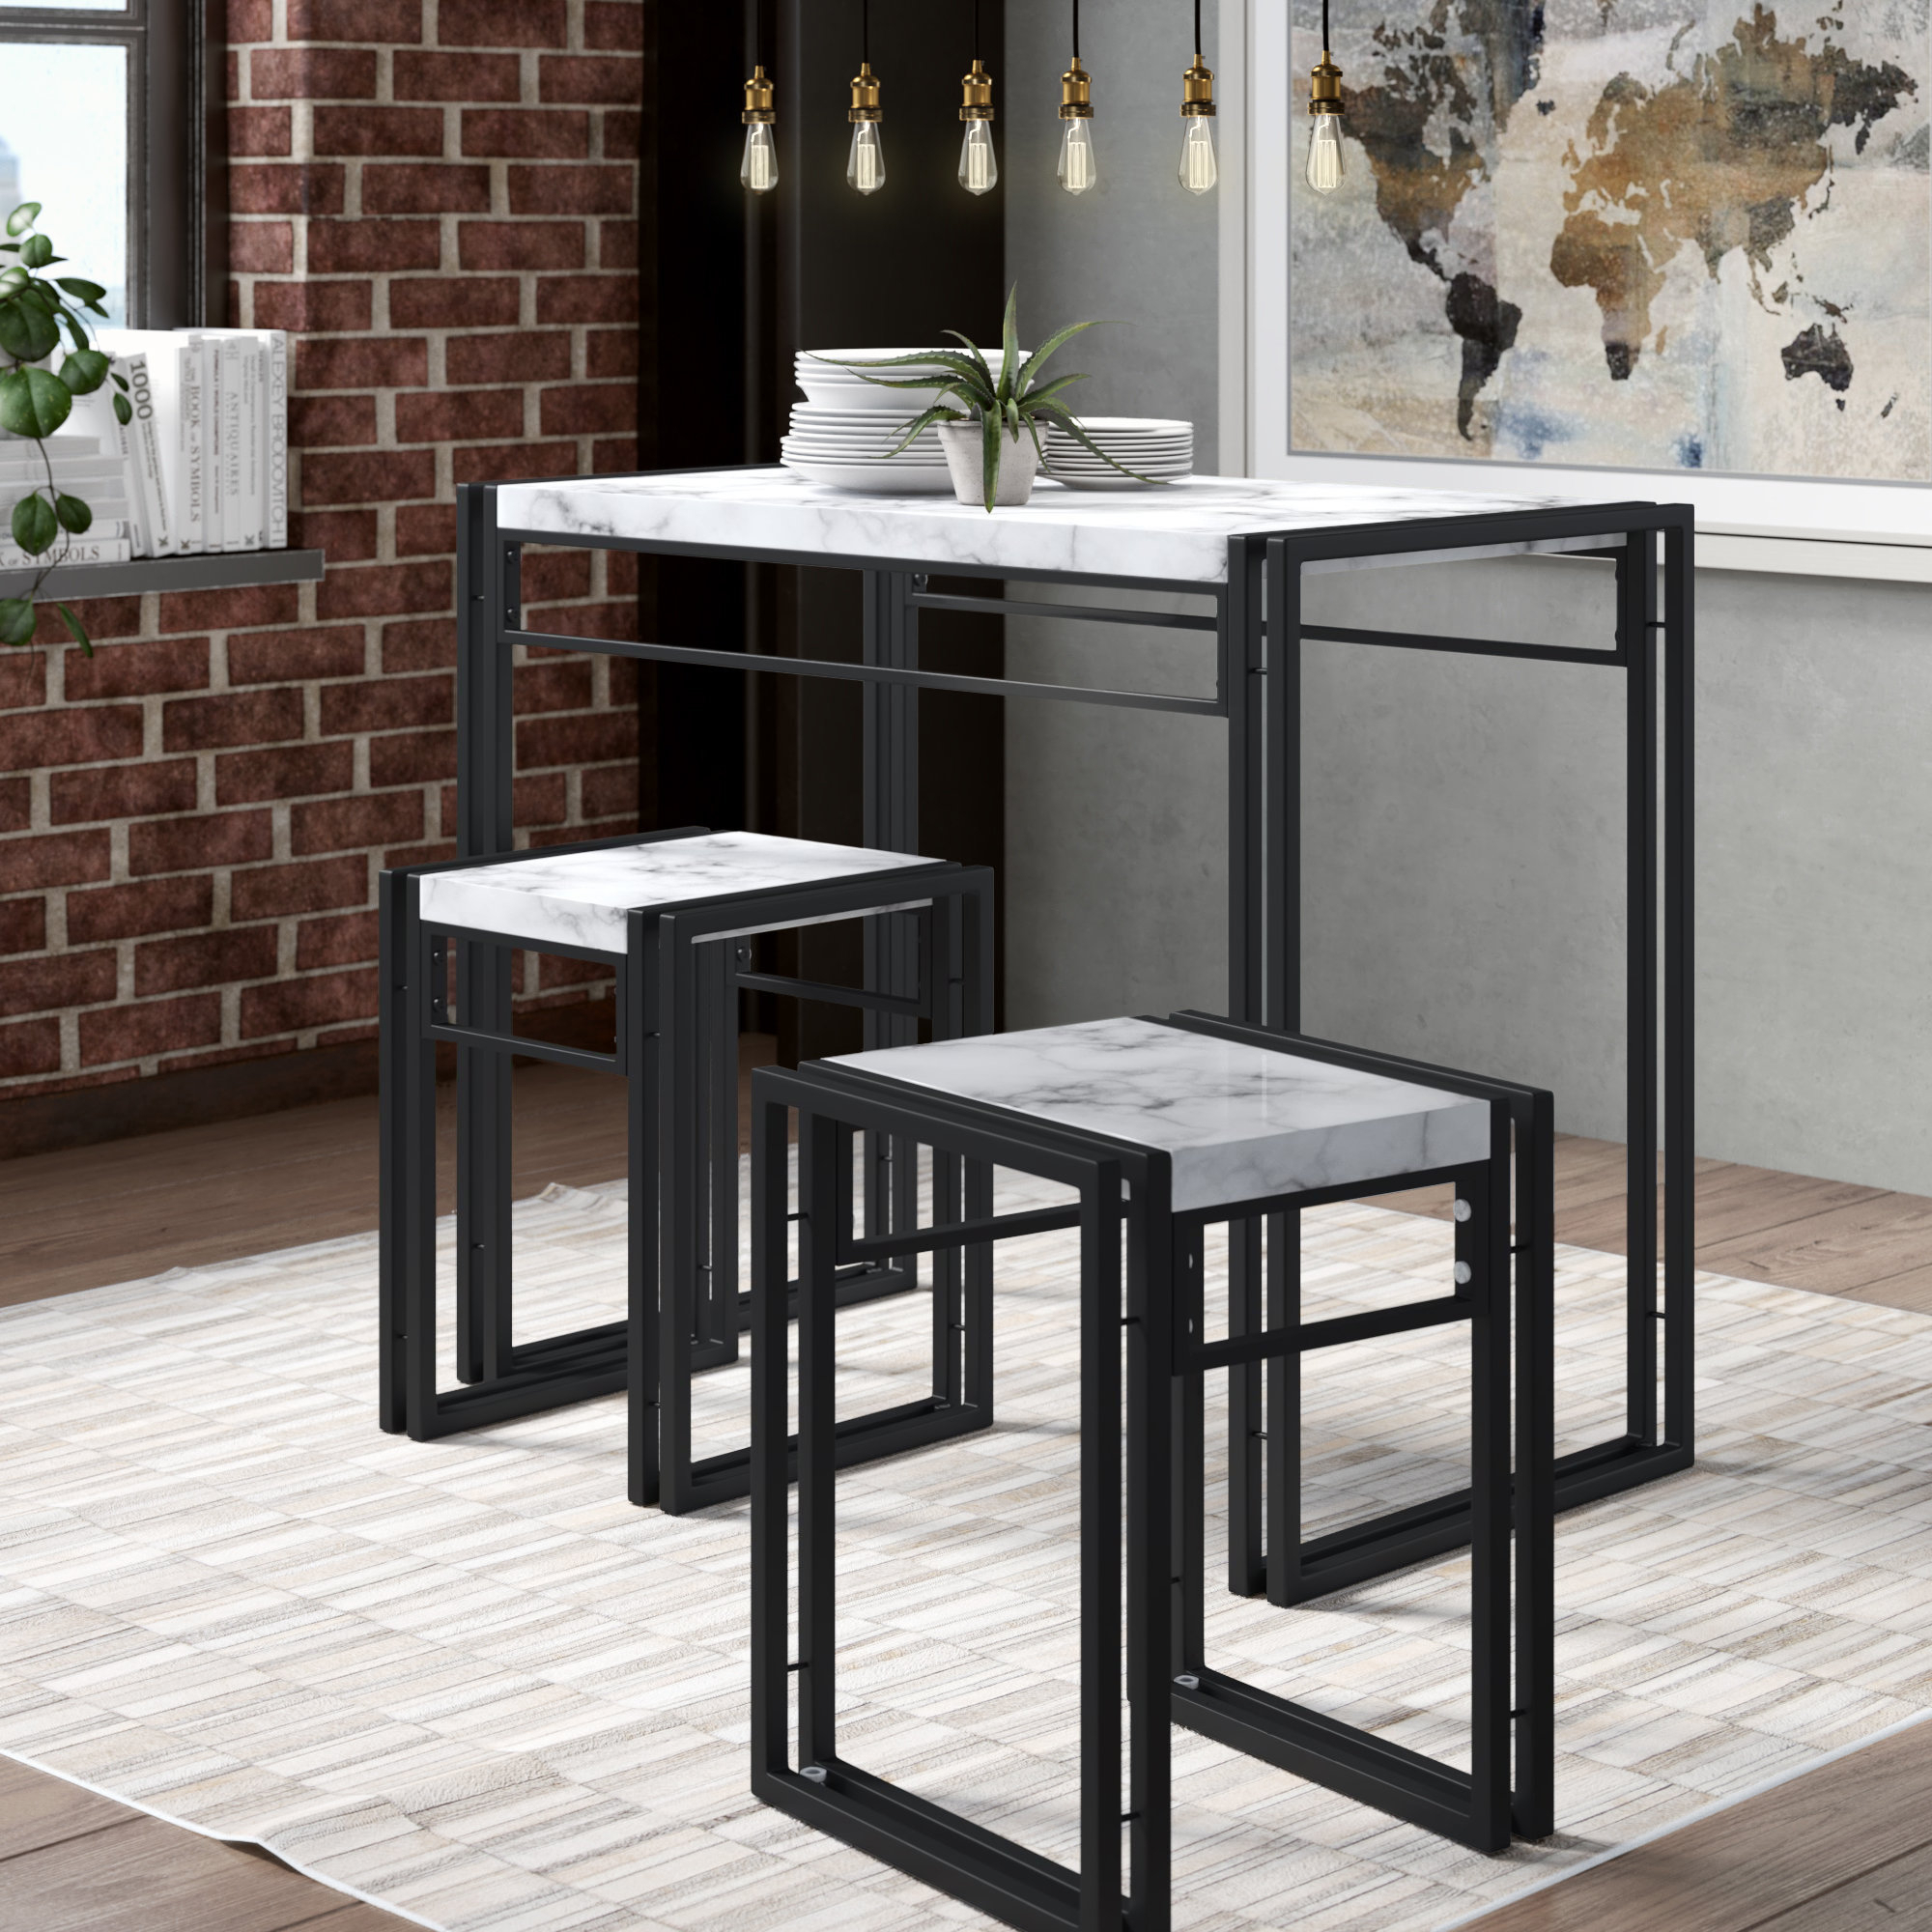 Debby Small Space 3 Piece Dining Set With 2018 Miskell 3 Piece Dining Sets (Image 3 of 20)